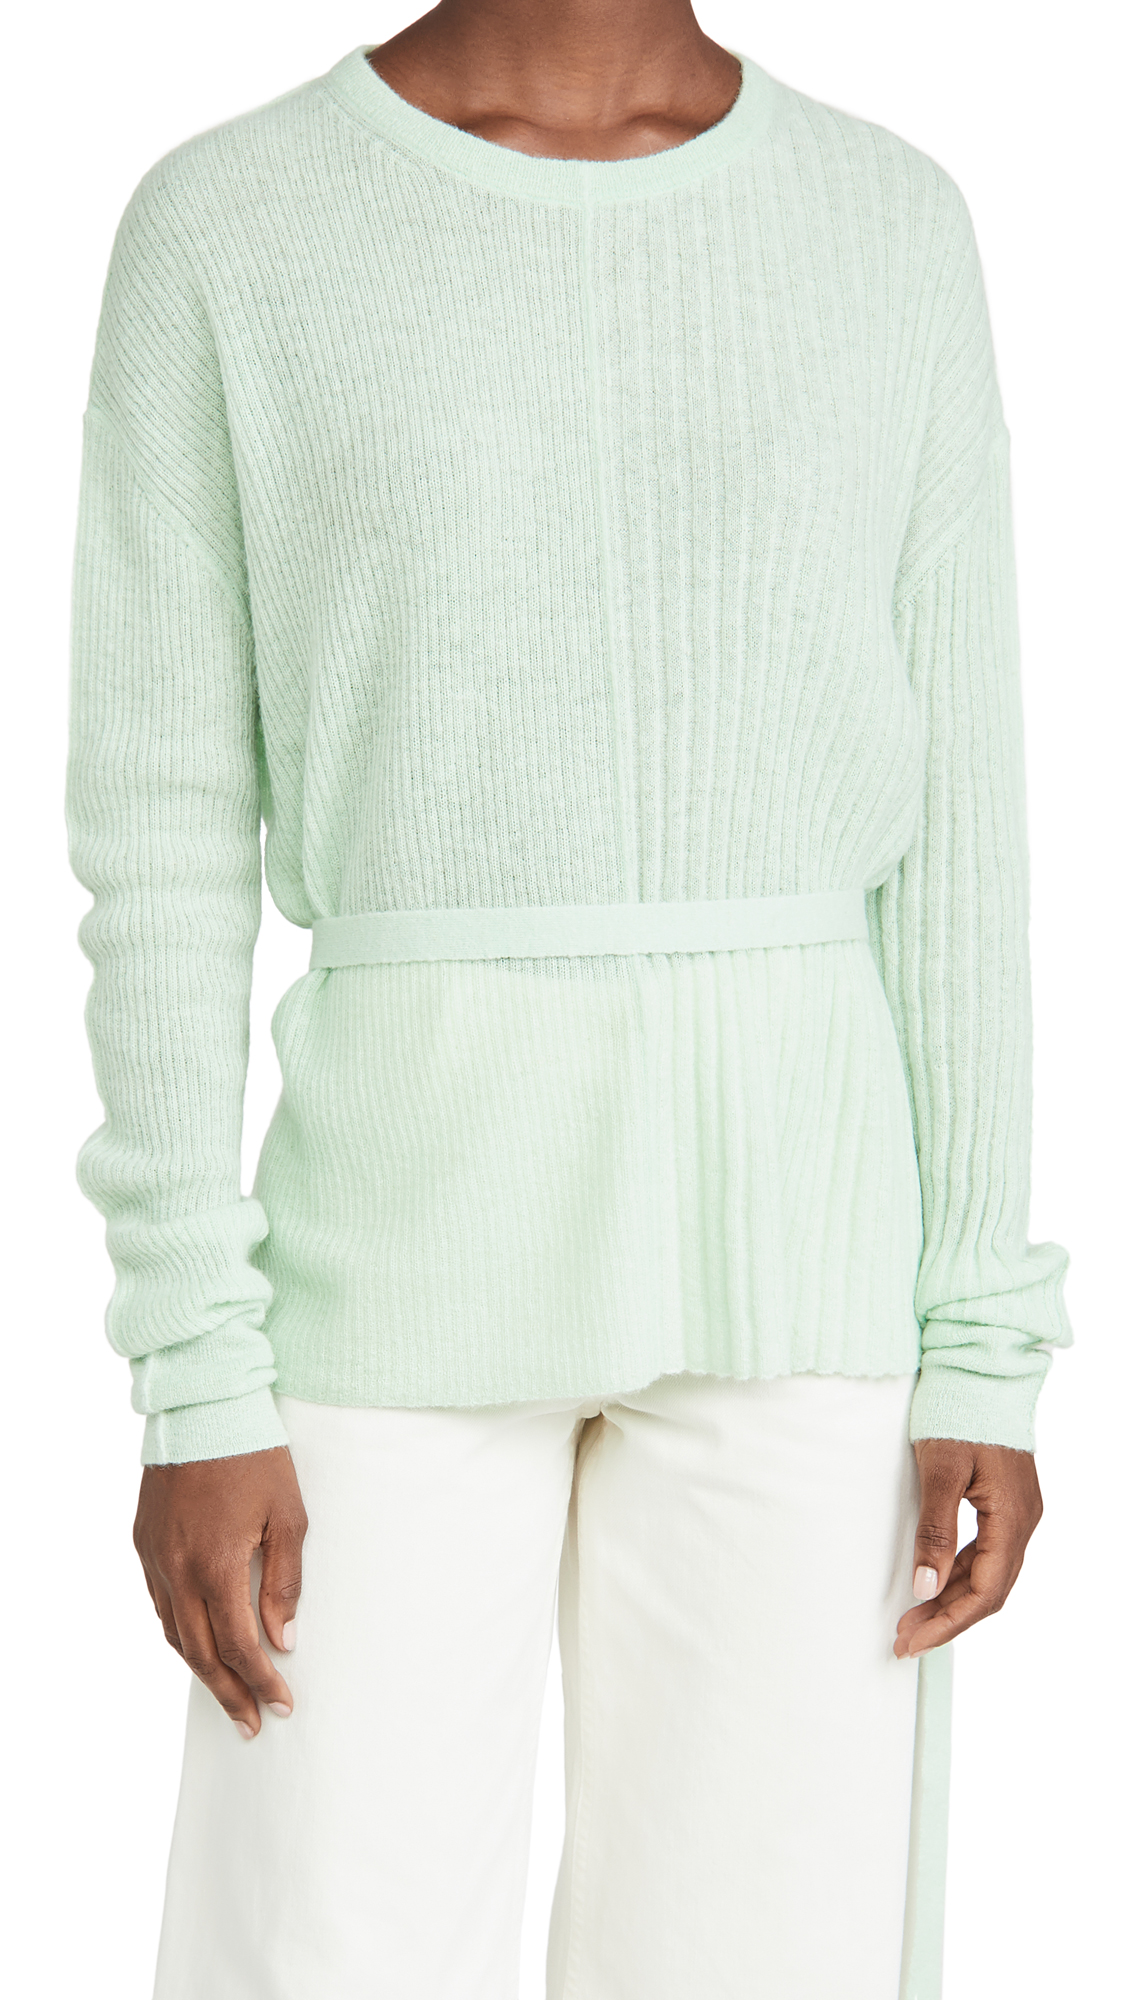 Helmut Lang Strap Crew Sweater